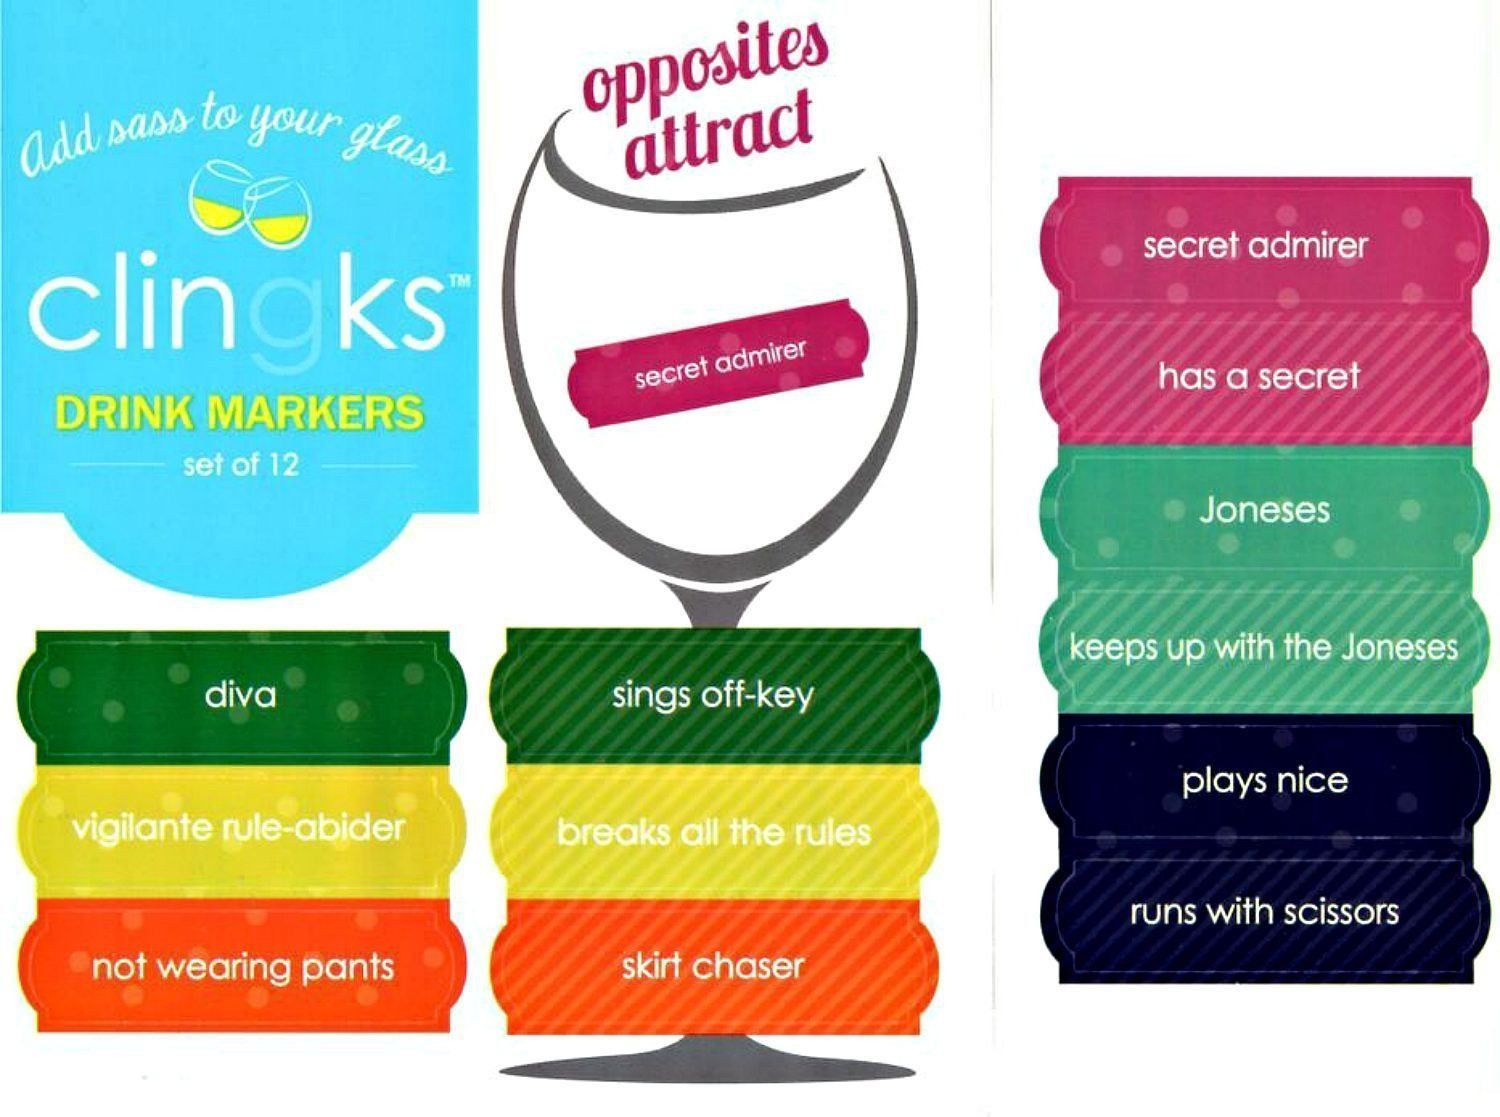 Clingks 12 Drink Markers Opposites Attract Fun Alternative to Wine Charms